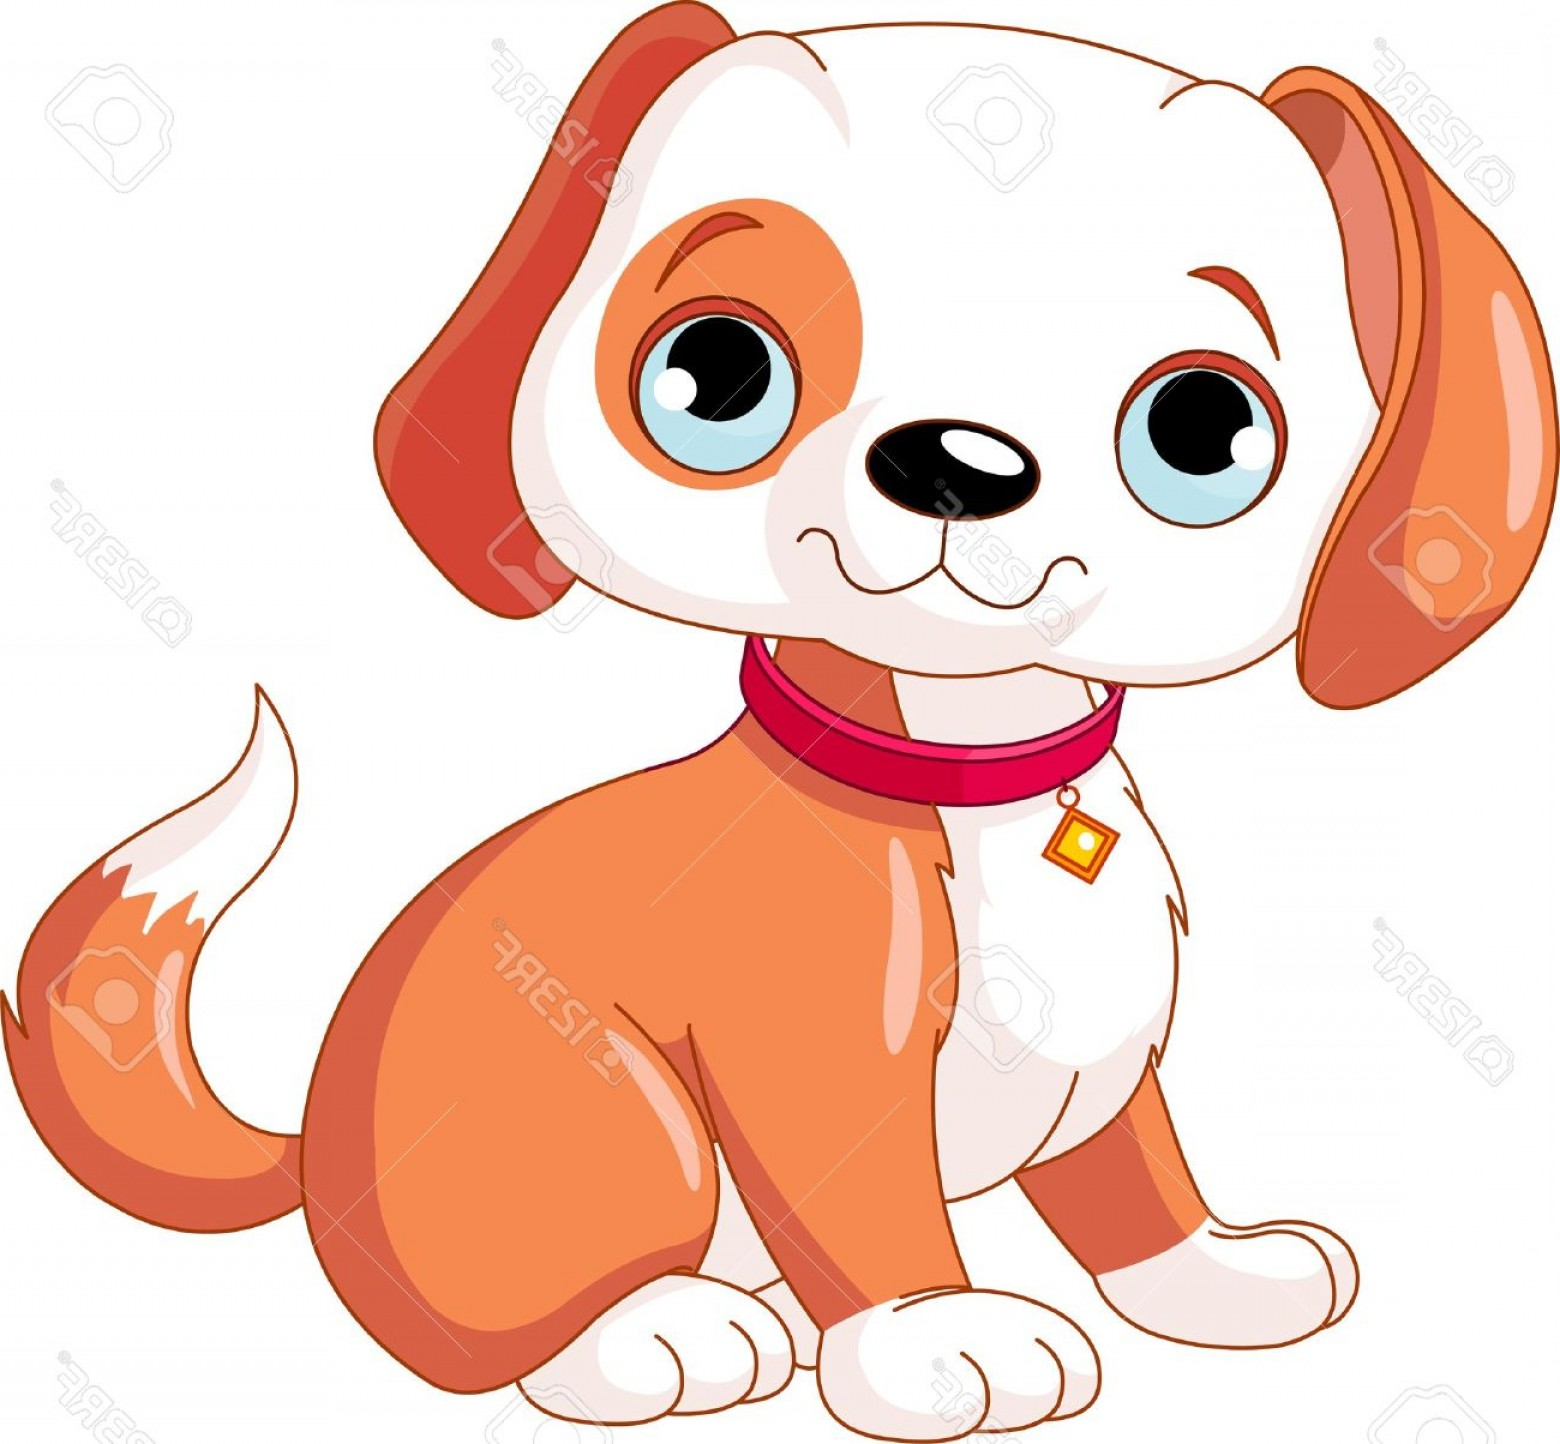 Bone Shaped Dog Tags Vector Art: Photocute Puppy Wearing A Red Collar With A Dog Tag